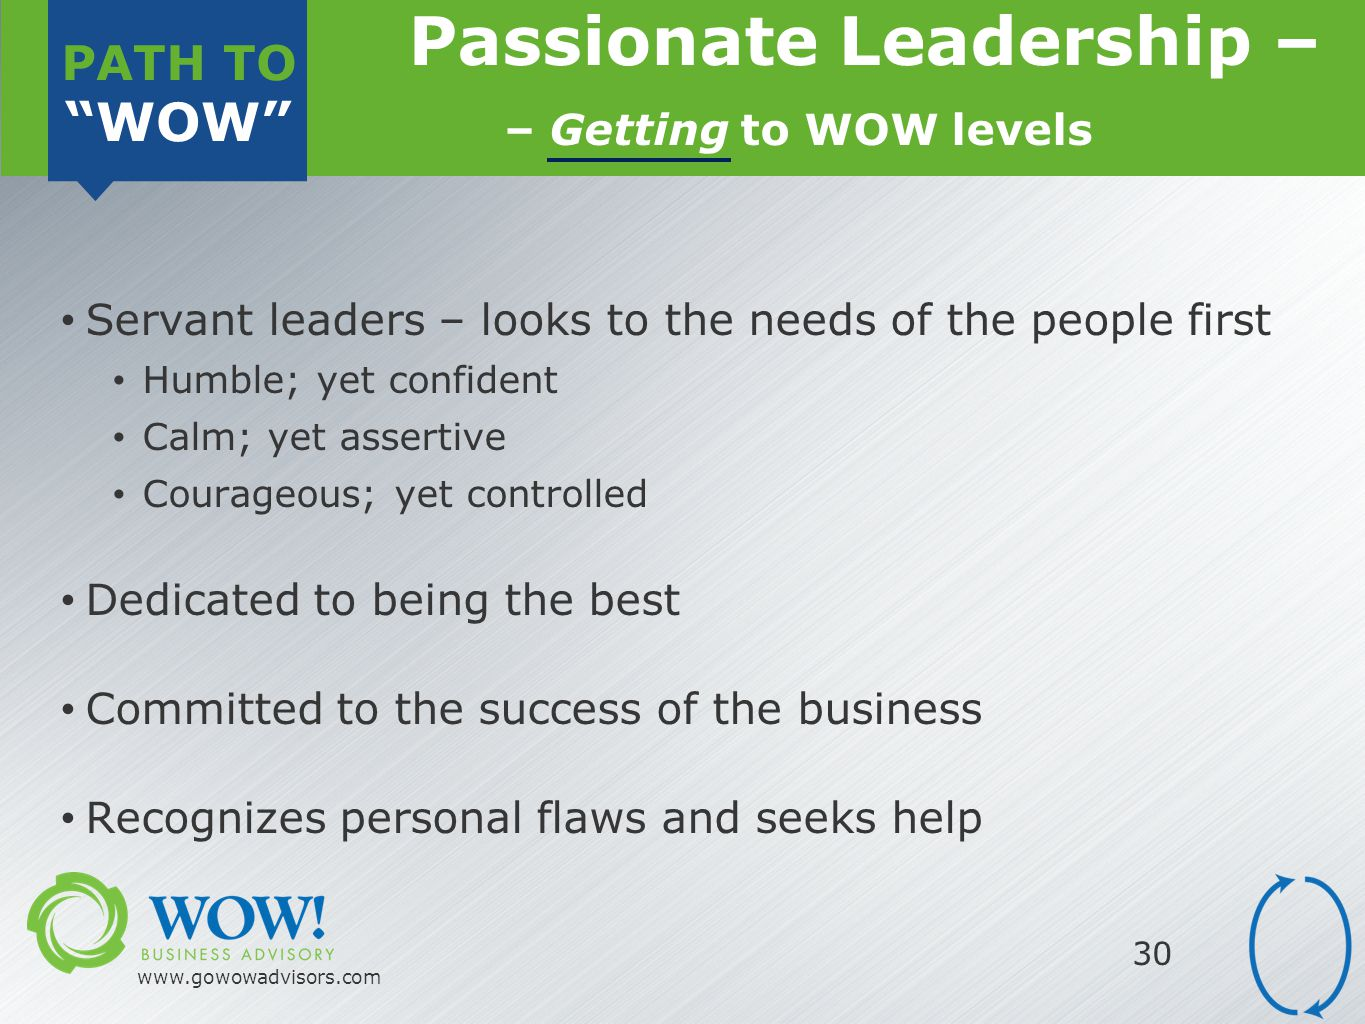 PATH TO WOW www.gowowadvisors.com 30 Servant leaders – looks to the needs of the people first Humble; yet confident Calm; yet assertive Courageous; yet controlled Dedicated to being the best Committed to the success of the business Recognizes personal flaws and seeks help Passionate Leadership – – Getting to WOW levels